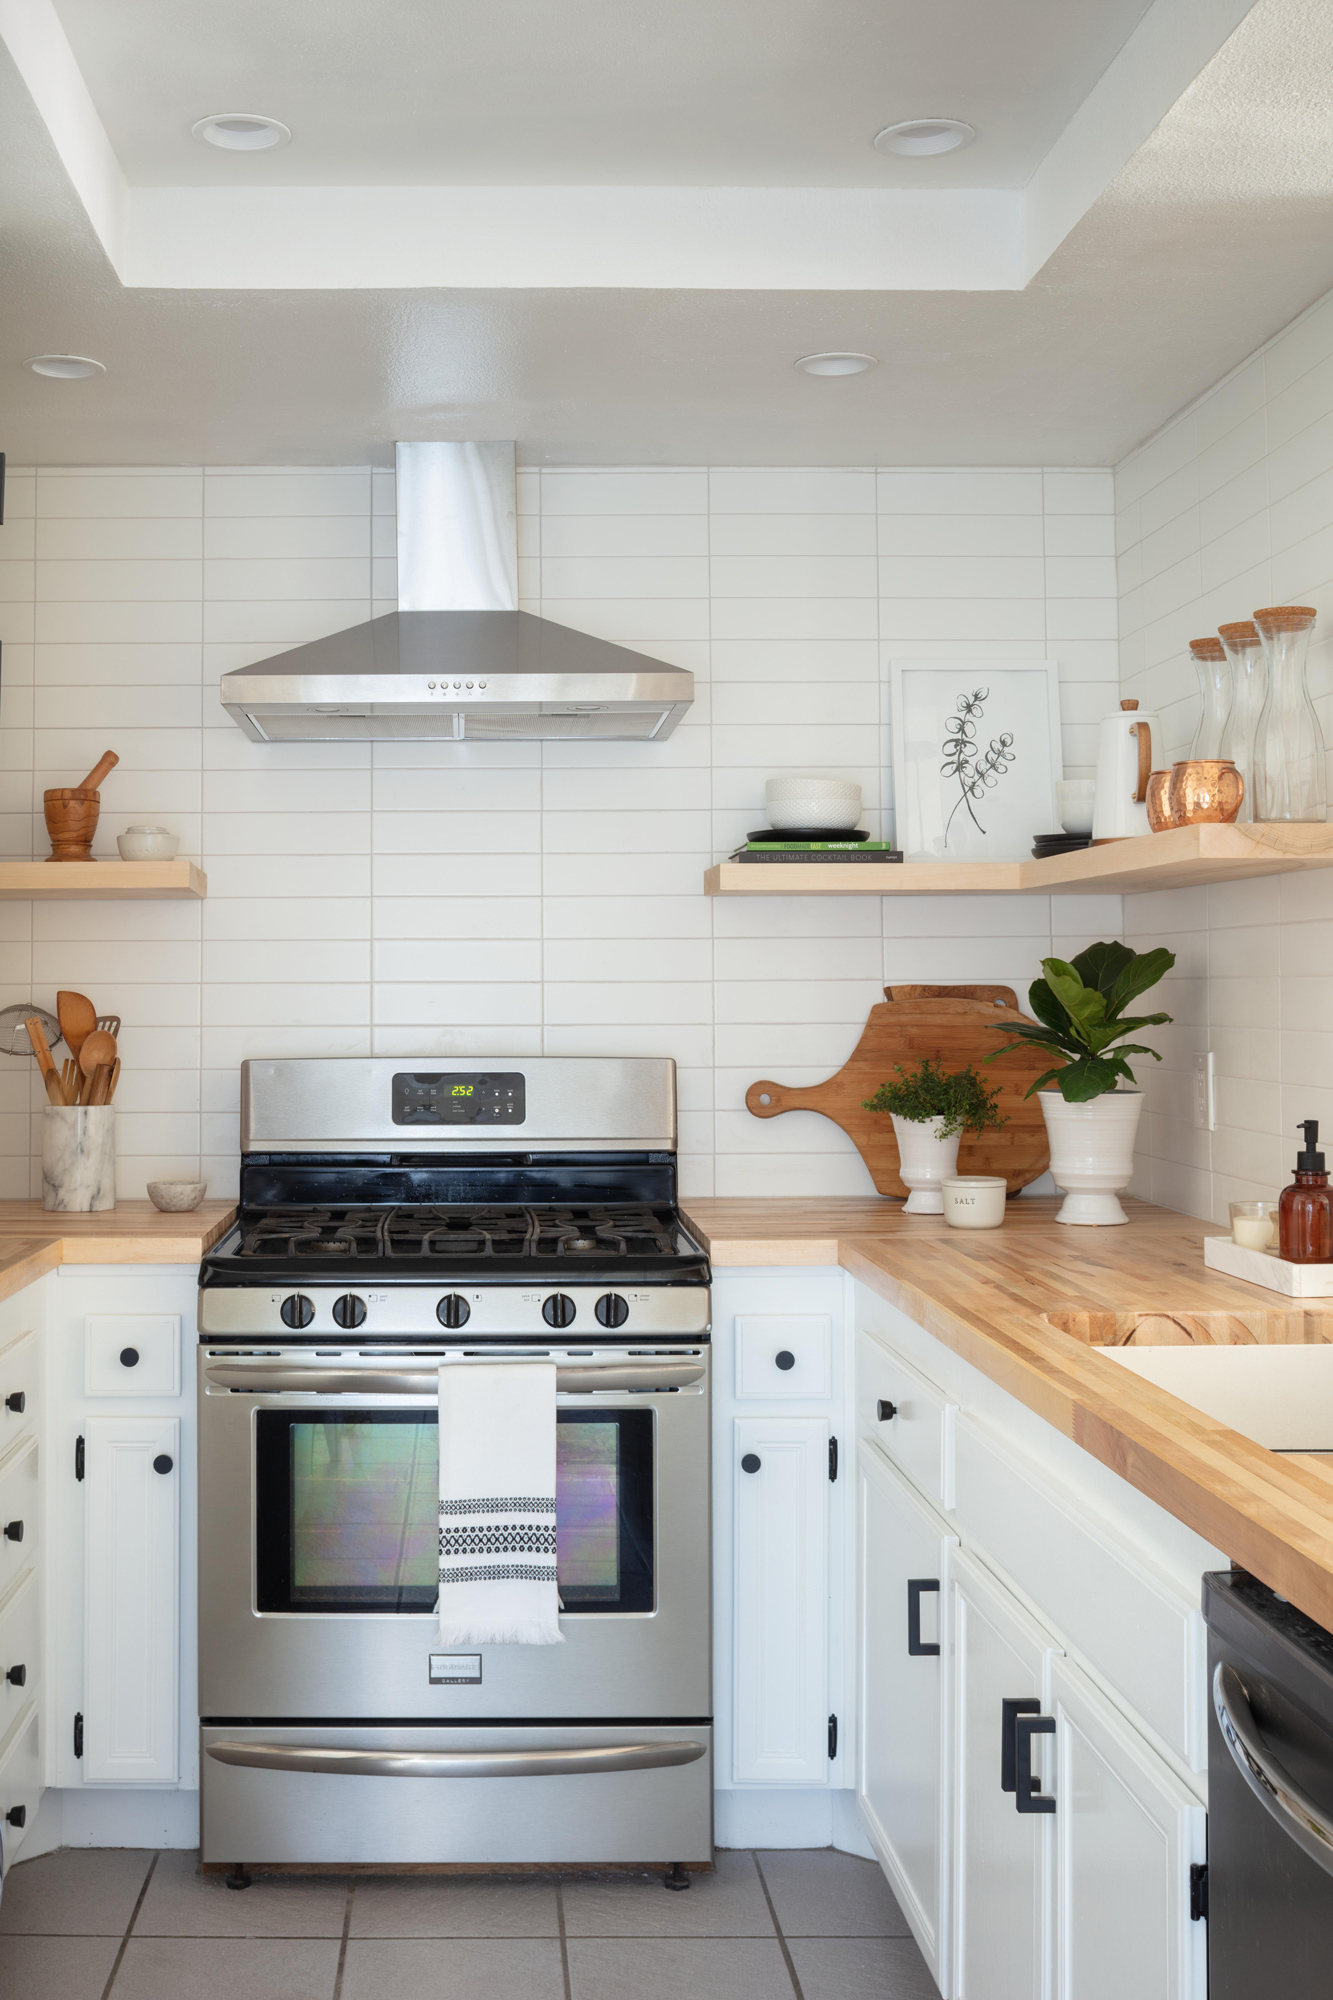 Make a Small Kitchen Look Larger with These Clever Design Tricks ...